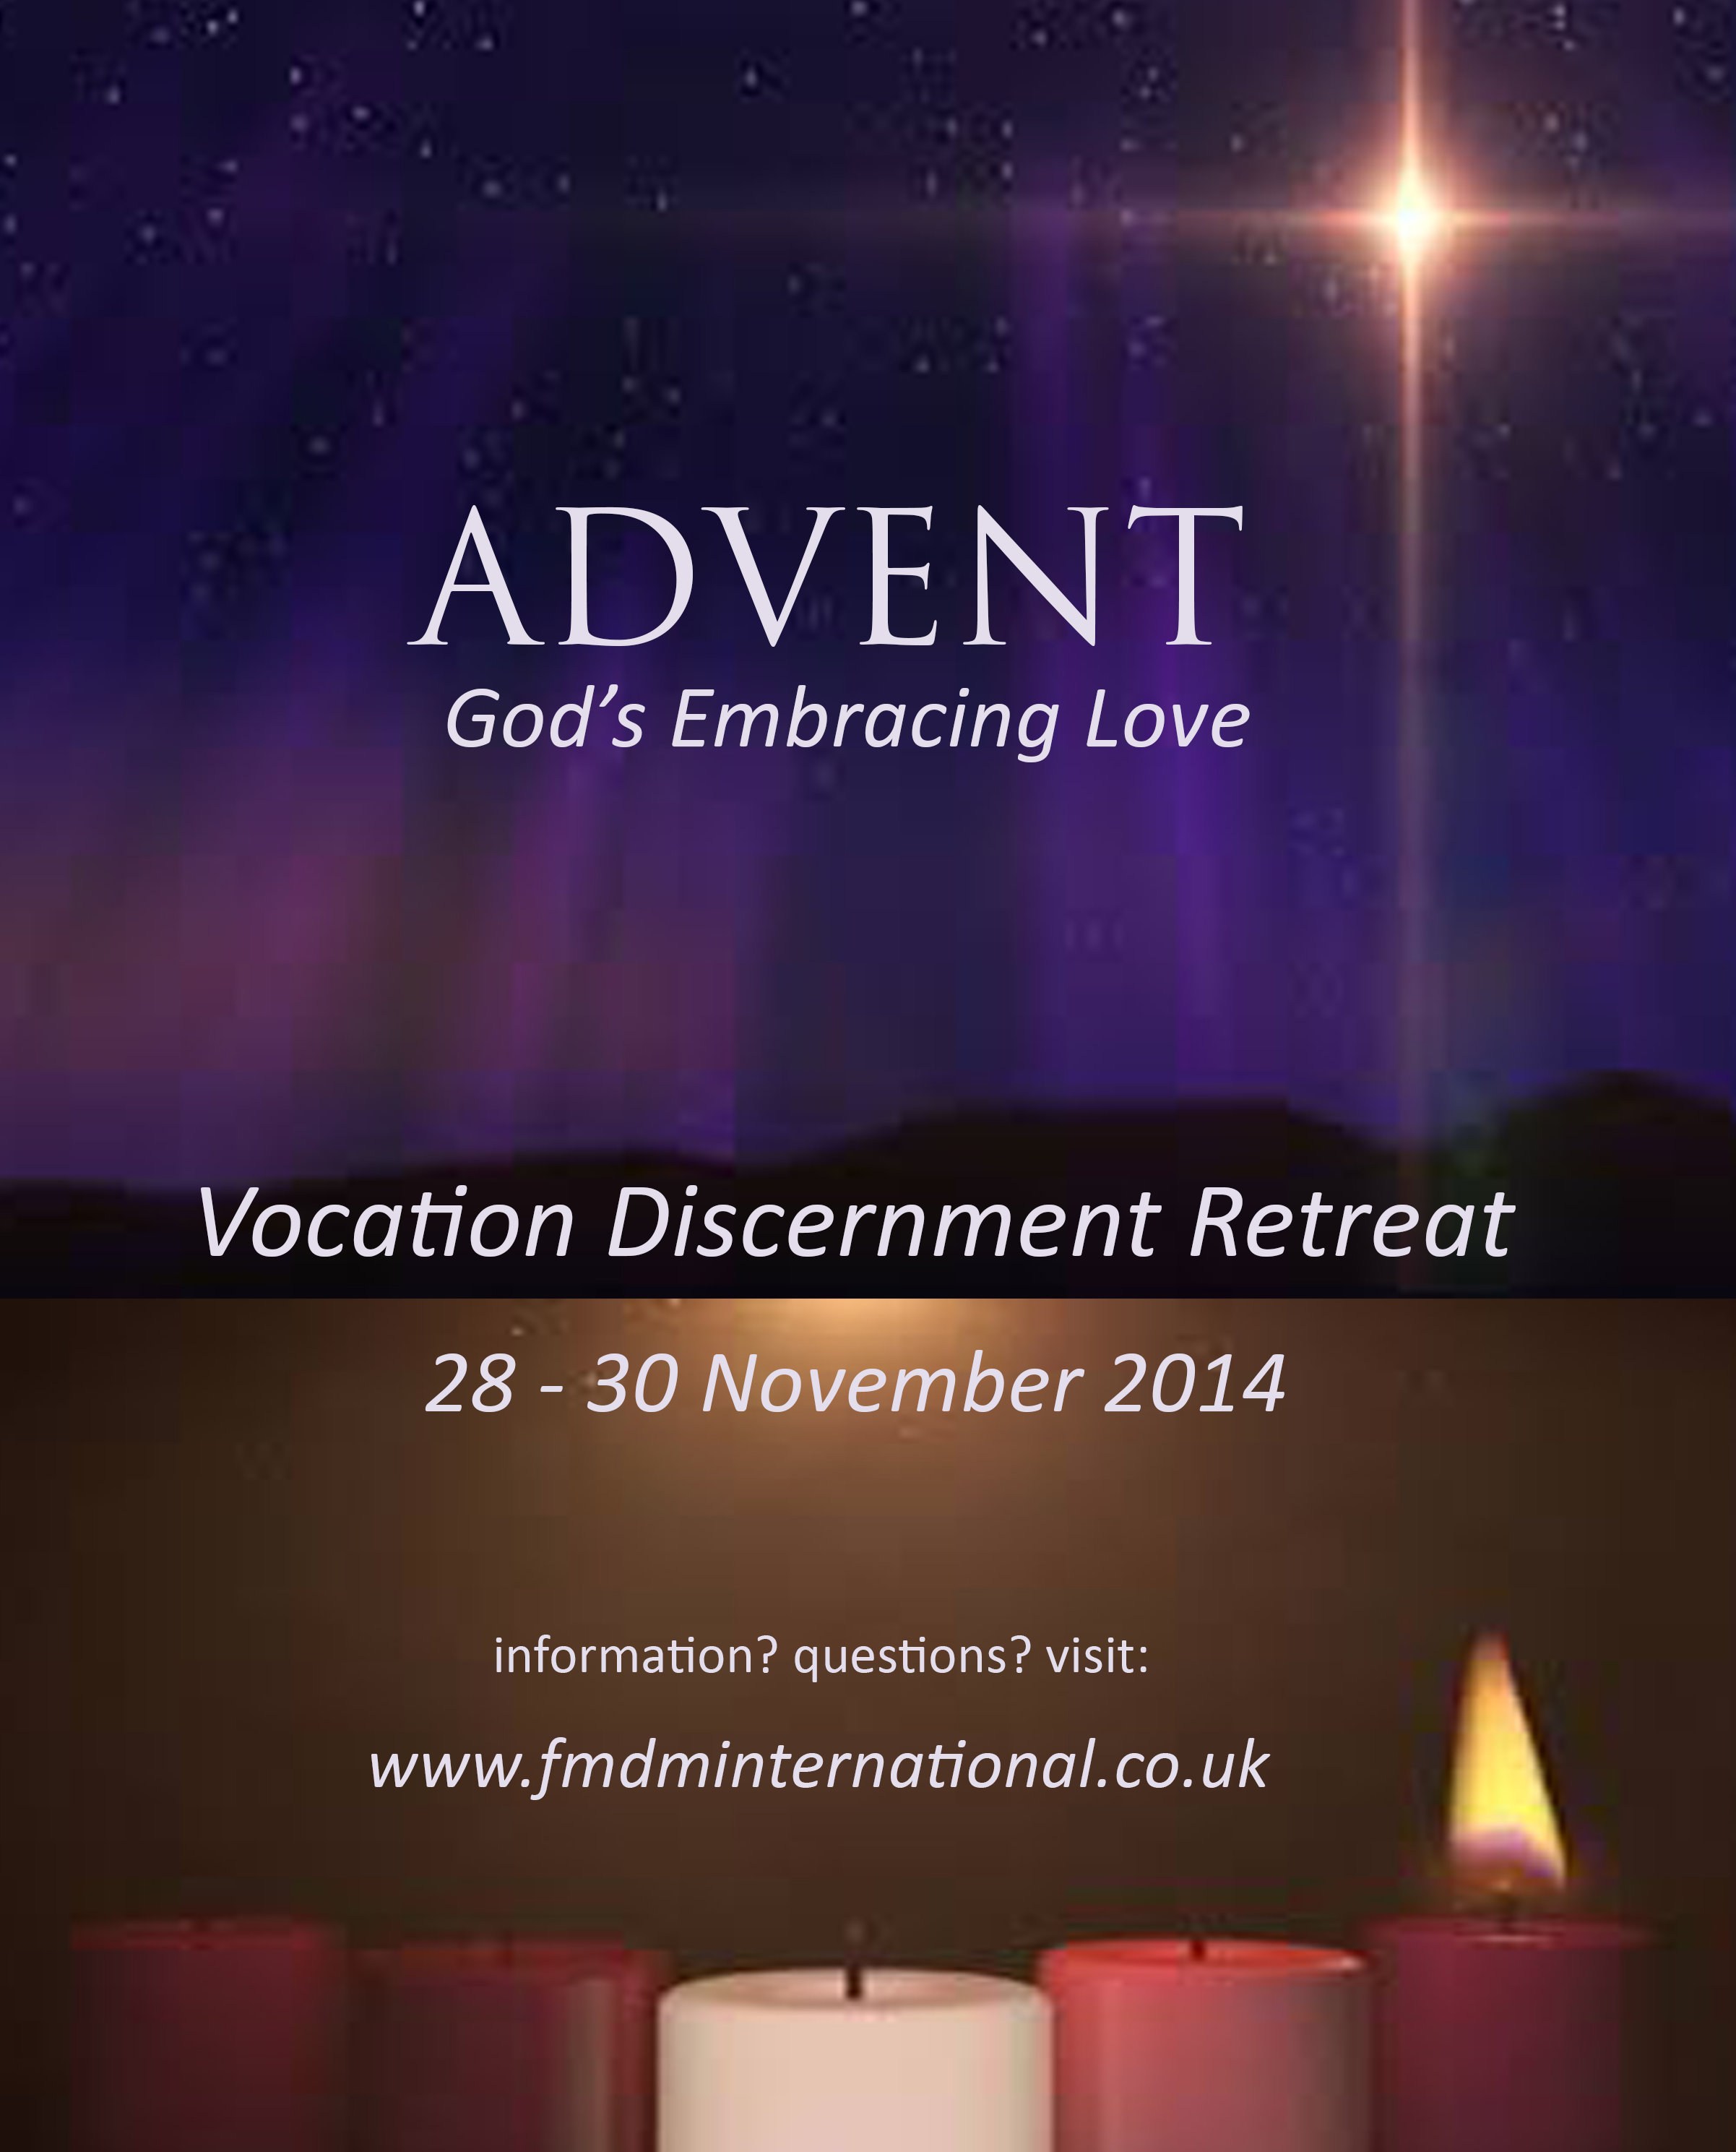 catholic singles in advent Issue: how can families better live the spirit of advent and christmas in their homes response the catholic church has designated the four weeks prec.